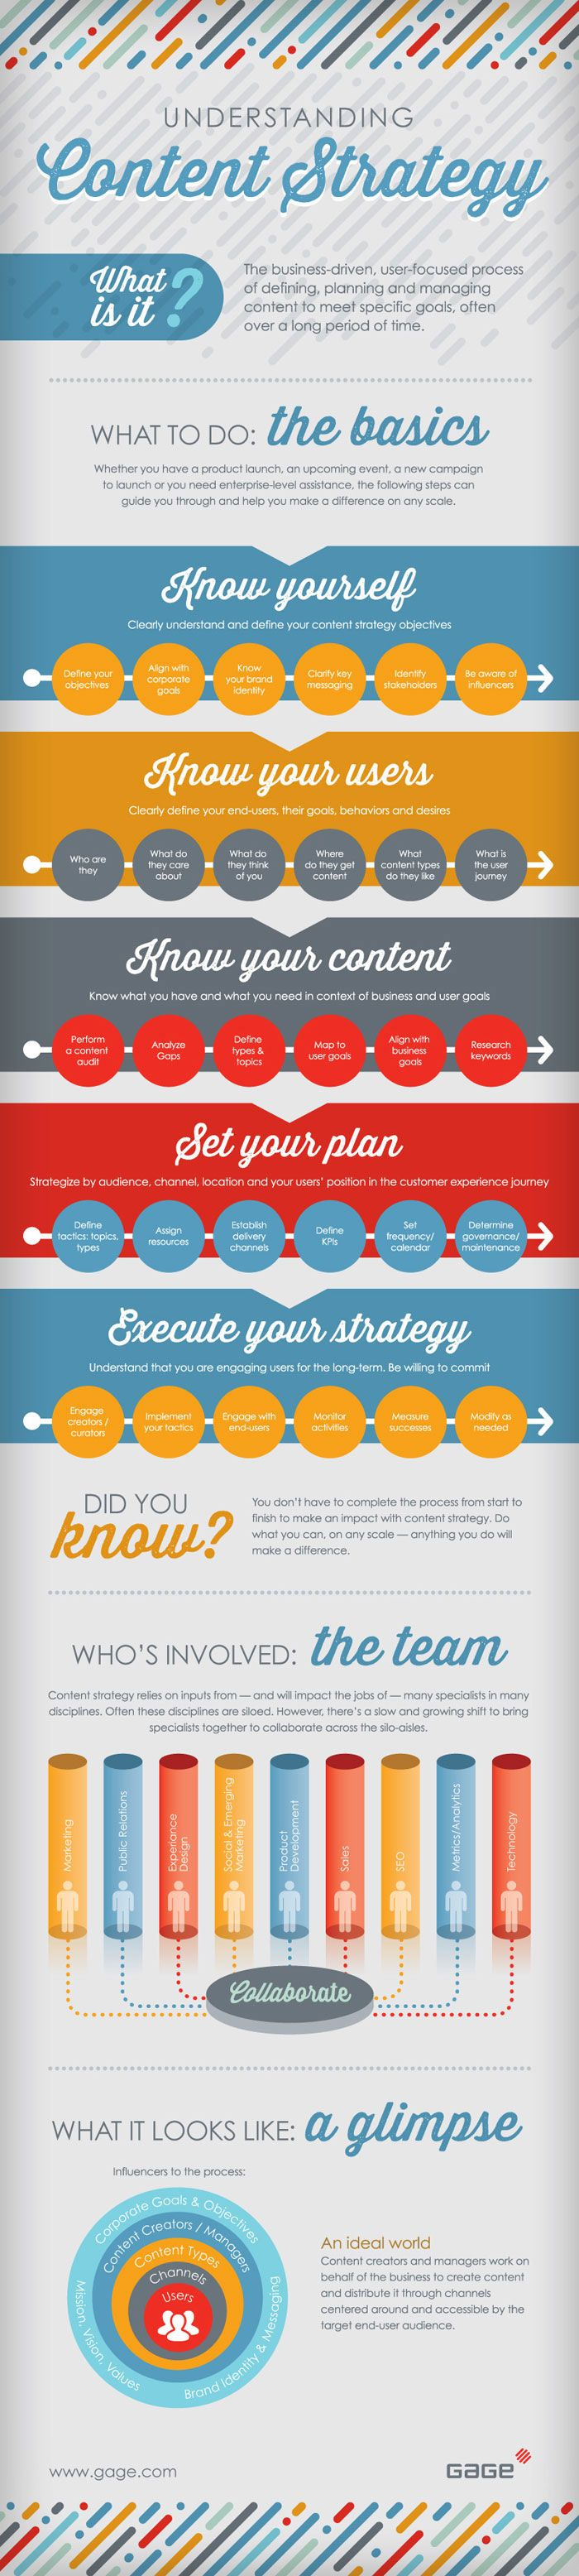 Infographic about understanding content marketing strategy available at Webmag.co   Digital Resources for Net Professionals from #WebsiteMagazine